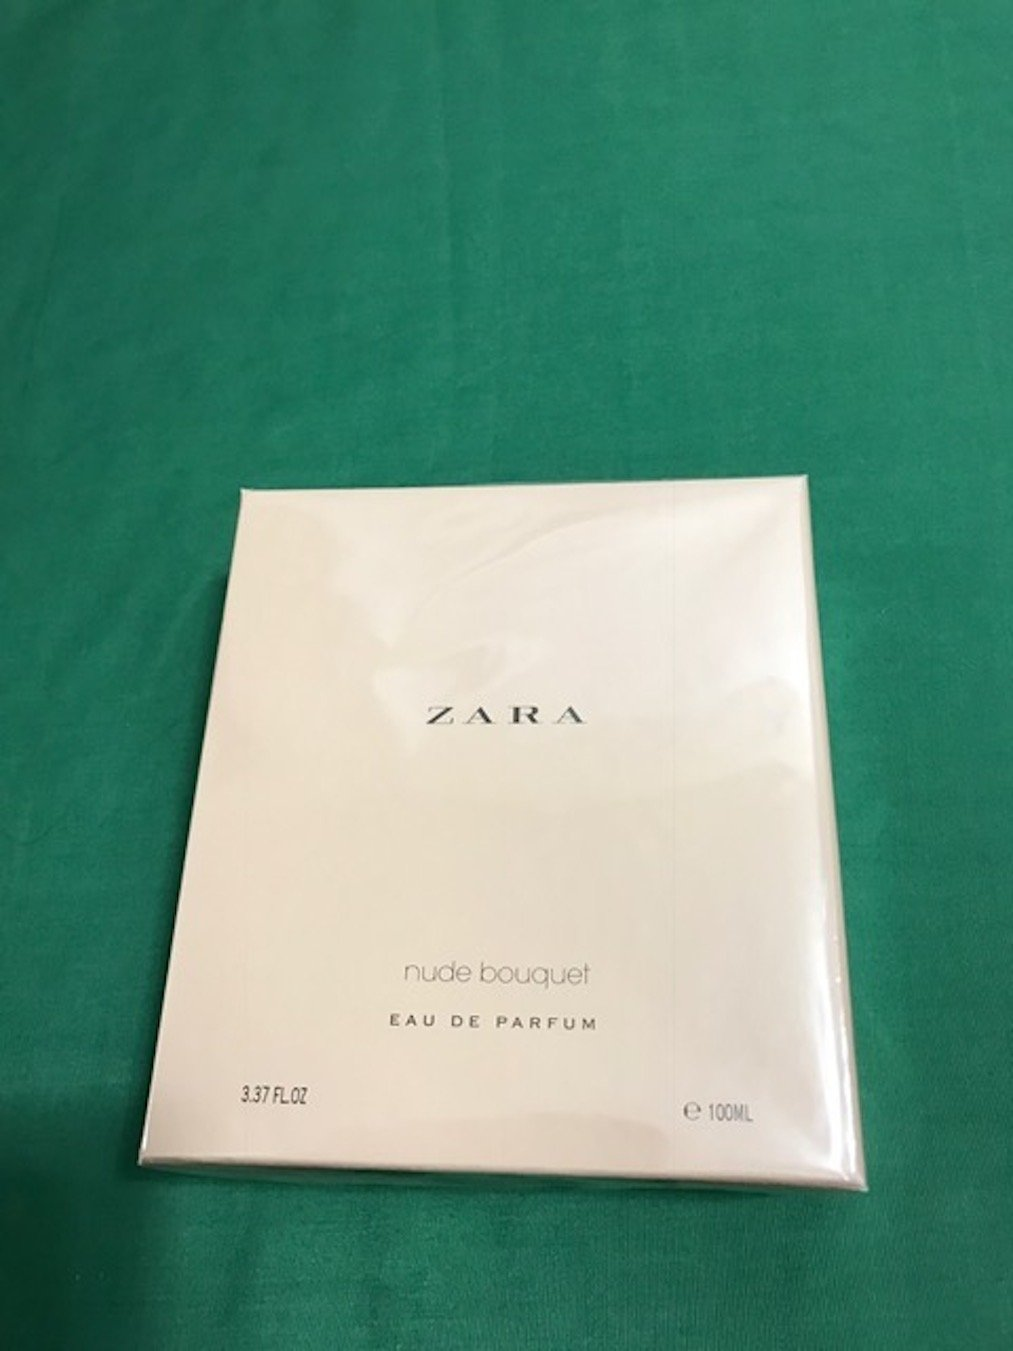 Amazon.com : ZARA Woman Nude Bouquet Eau De Parfum 100ml/3.37 oz : Beauty